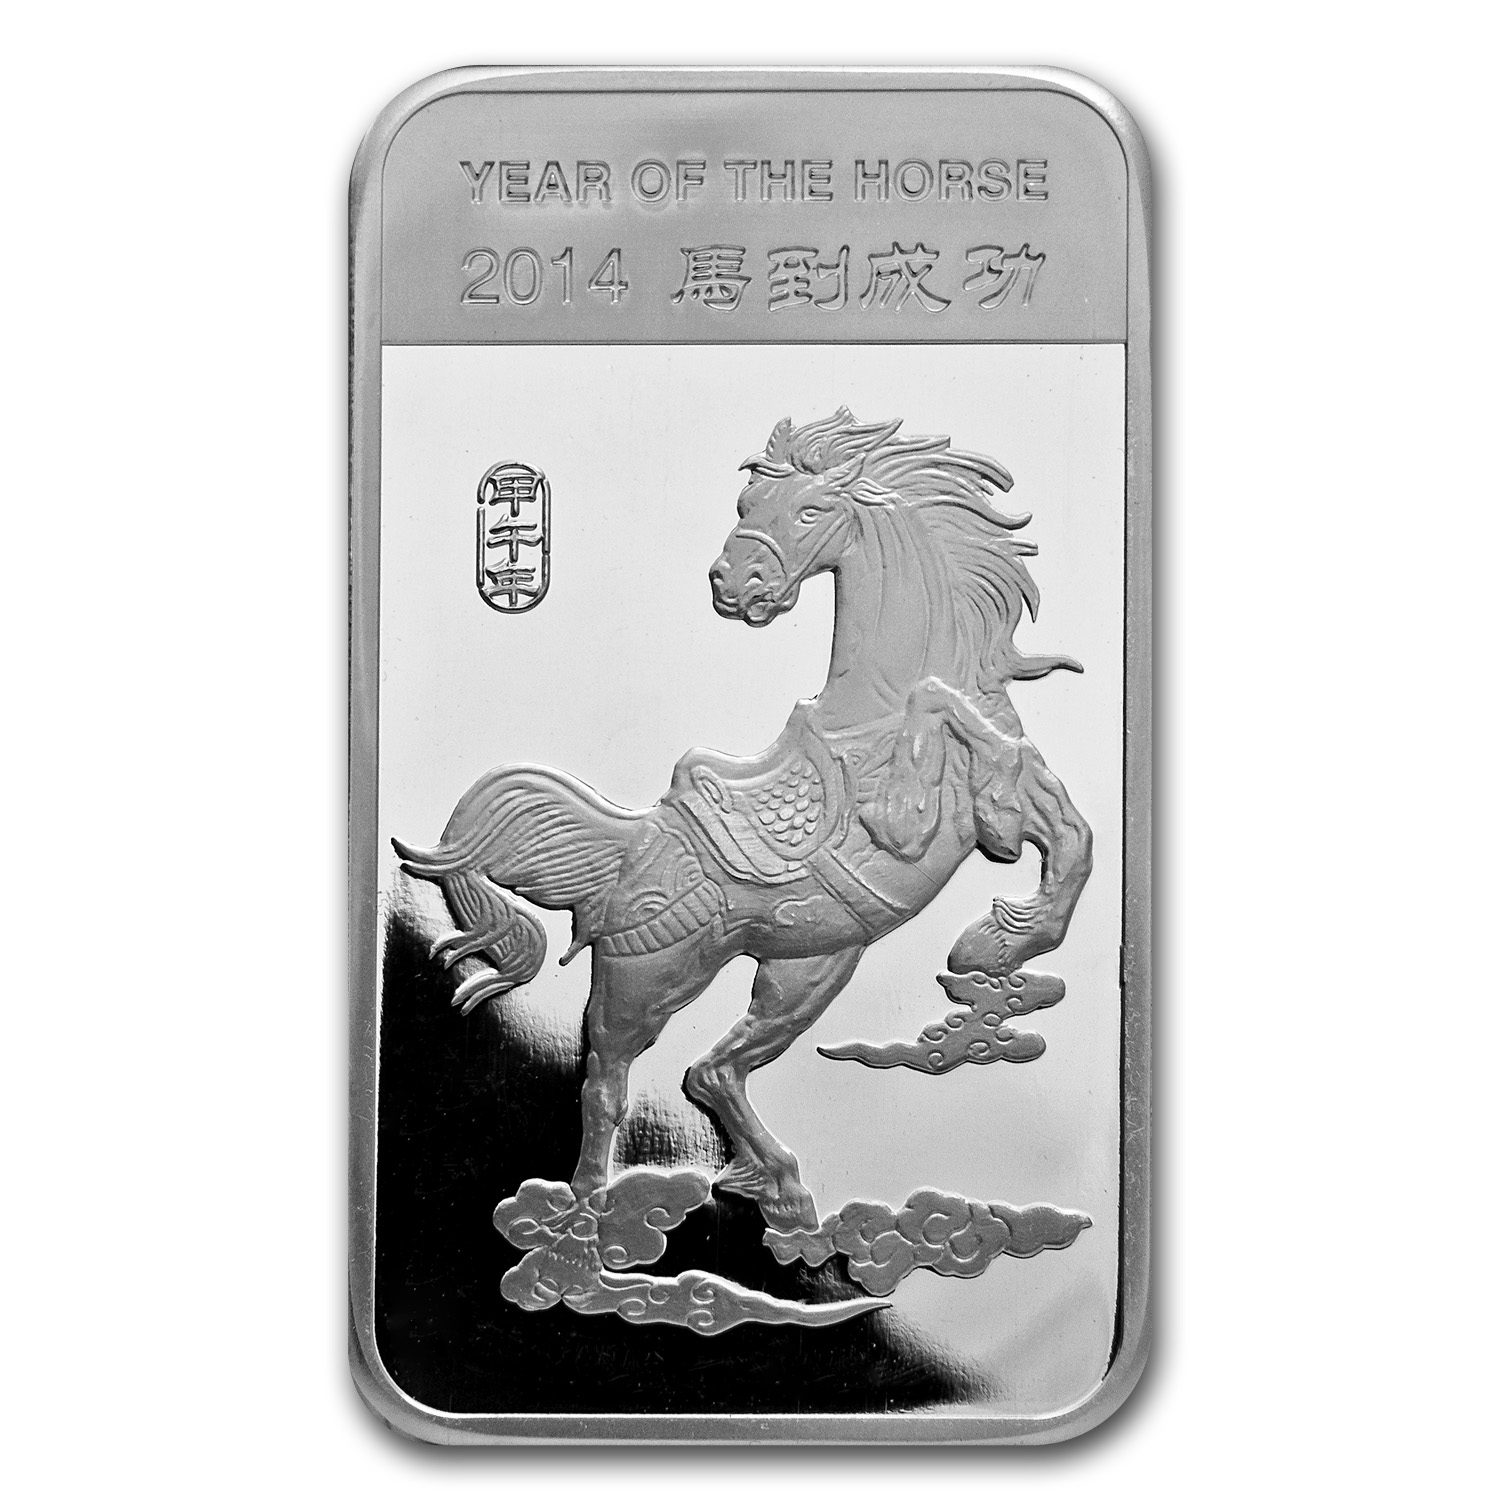 5 oz Silver Bar - APMEX (2014 Year of the Horse)